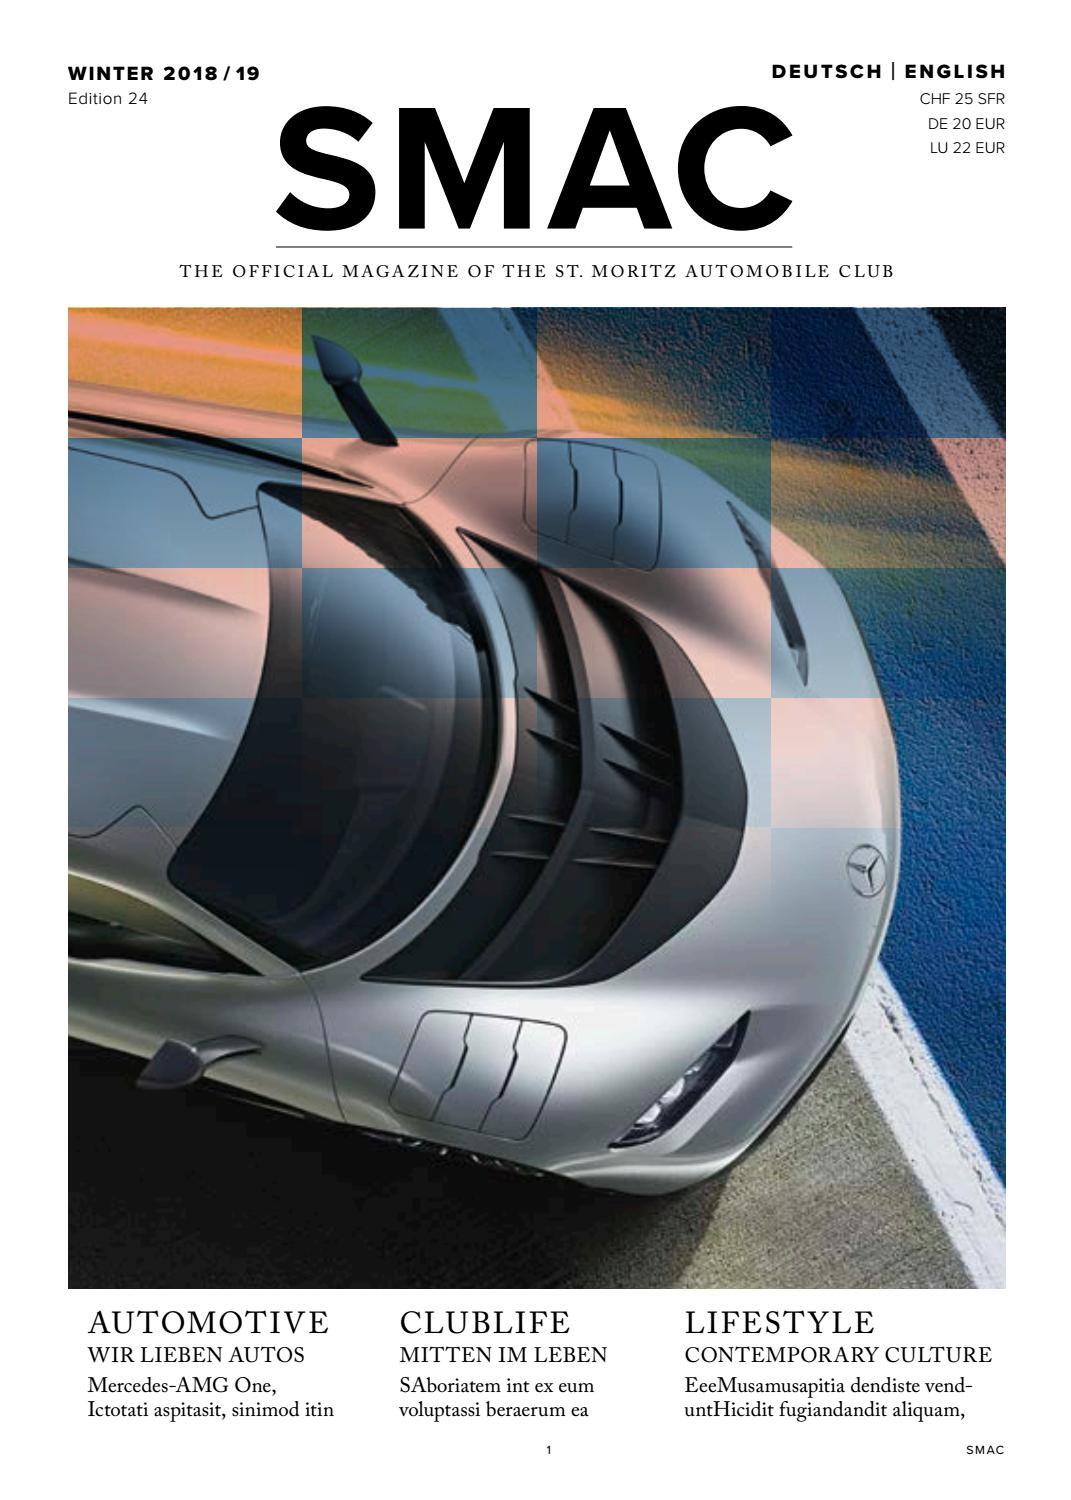 Art Deco Stil Duden Smac The Official Magazine Of The St Moritz Automobile